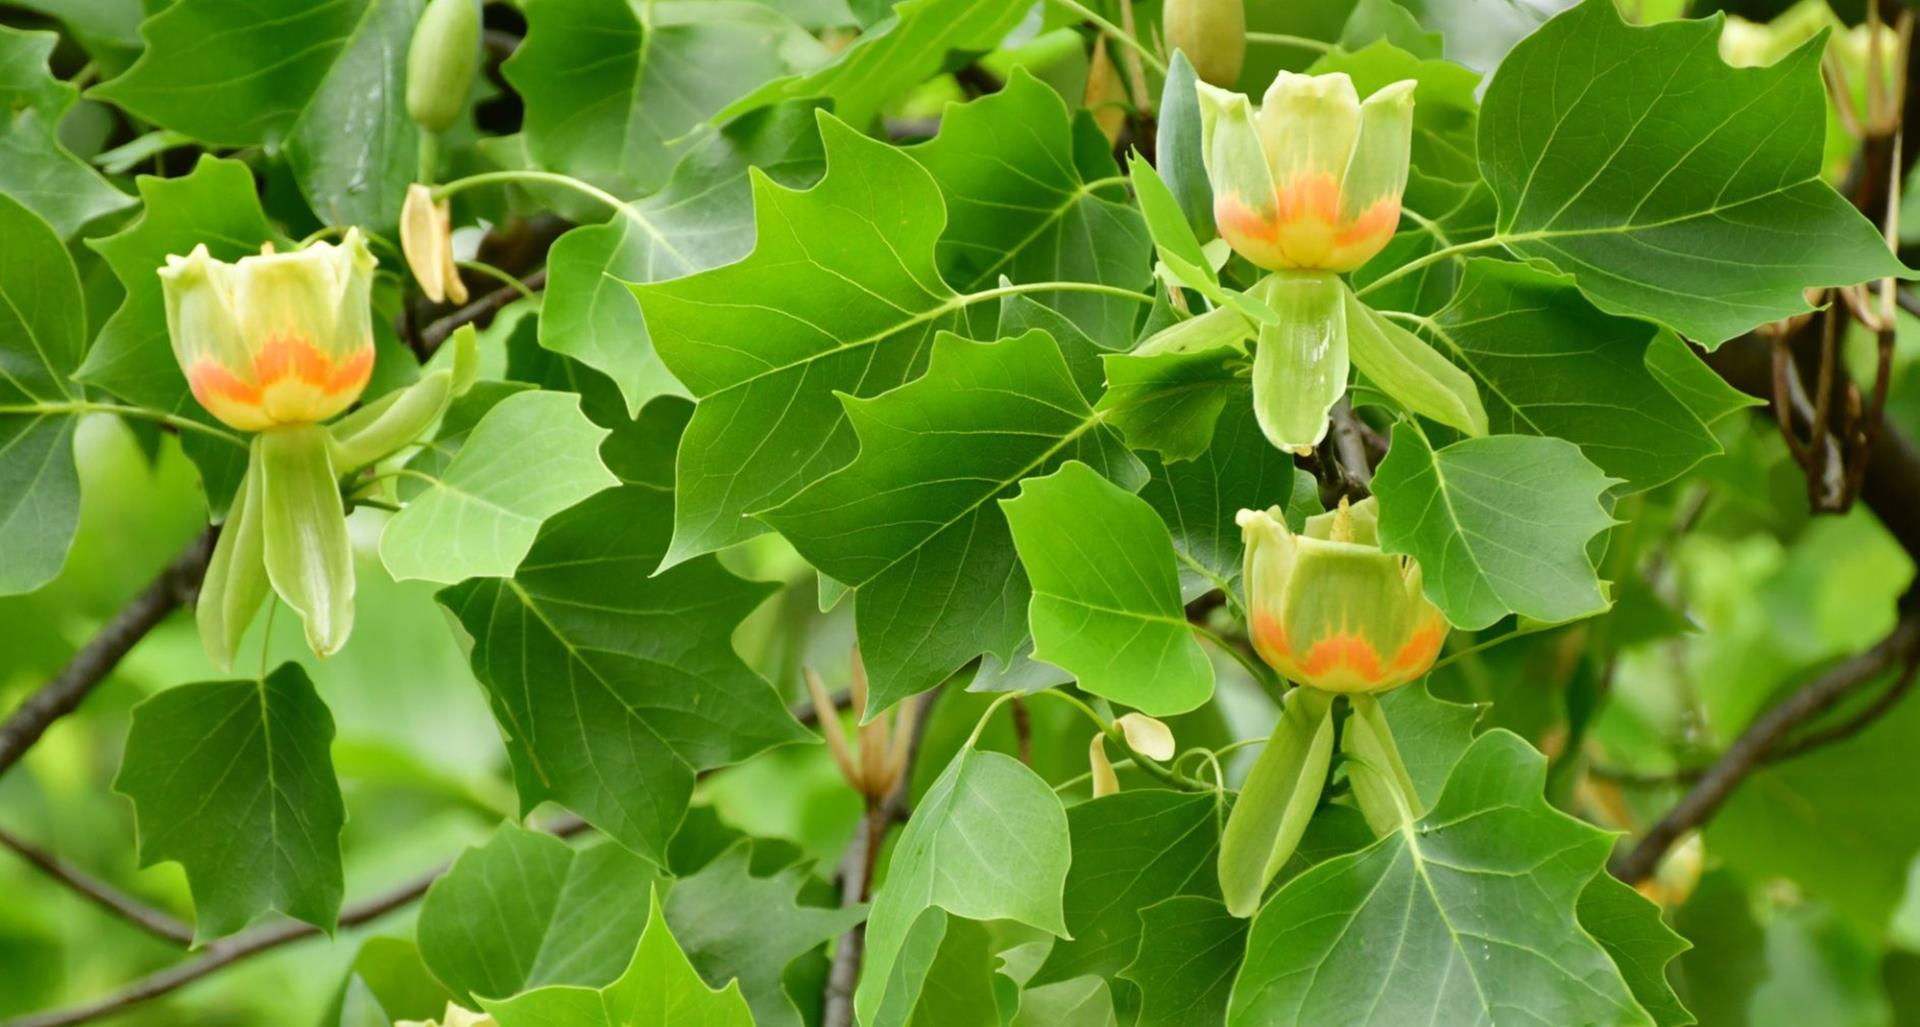 #TeachingTuesday: Tulip Poplar